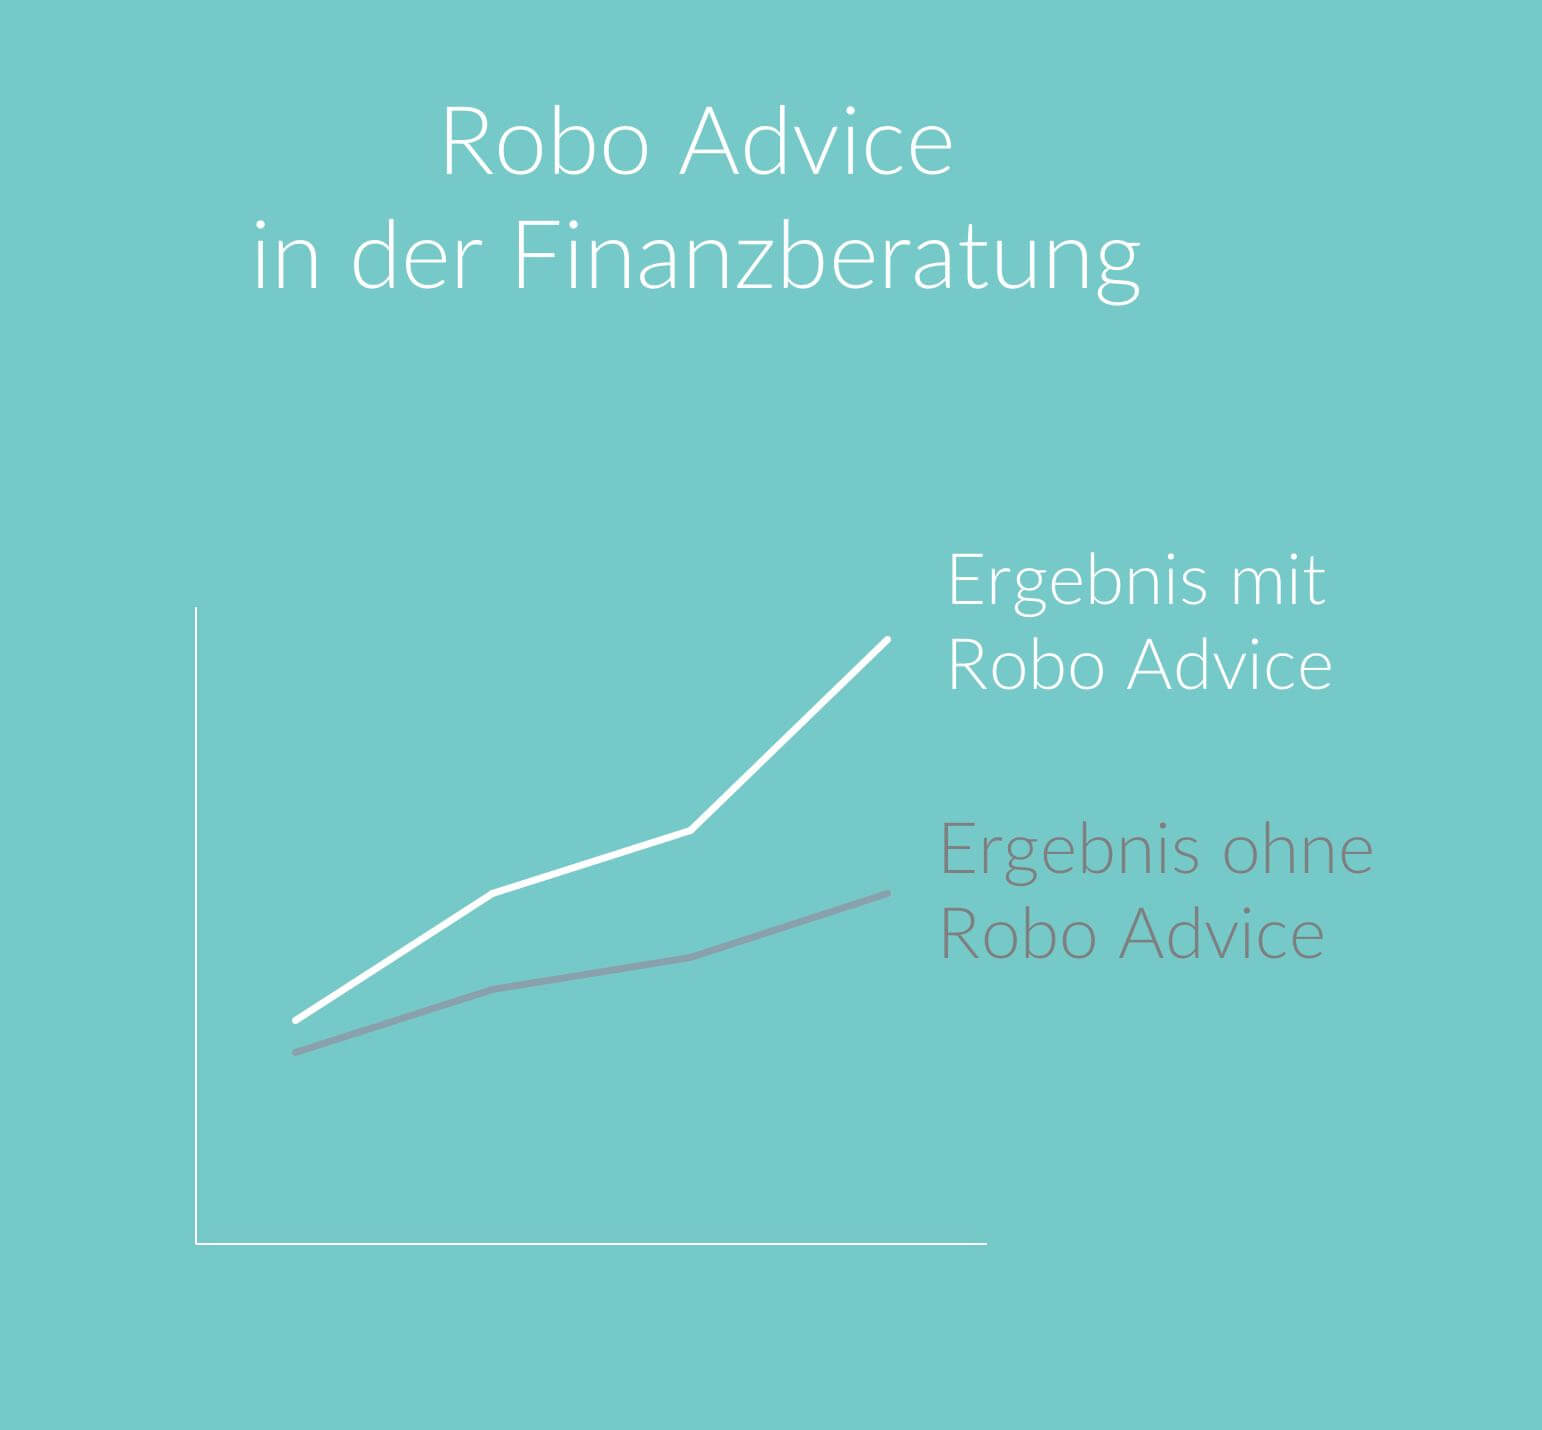 Robo Advice in der Finanzberatung 2